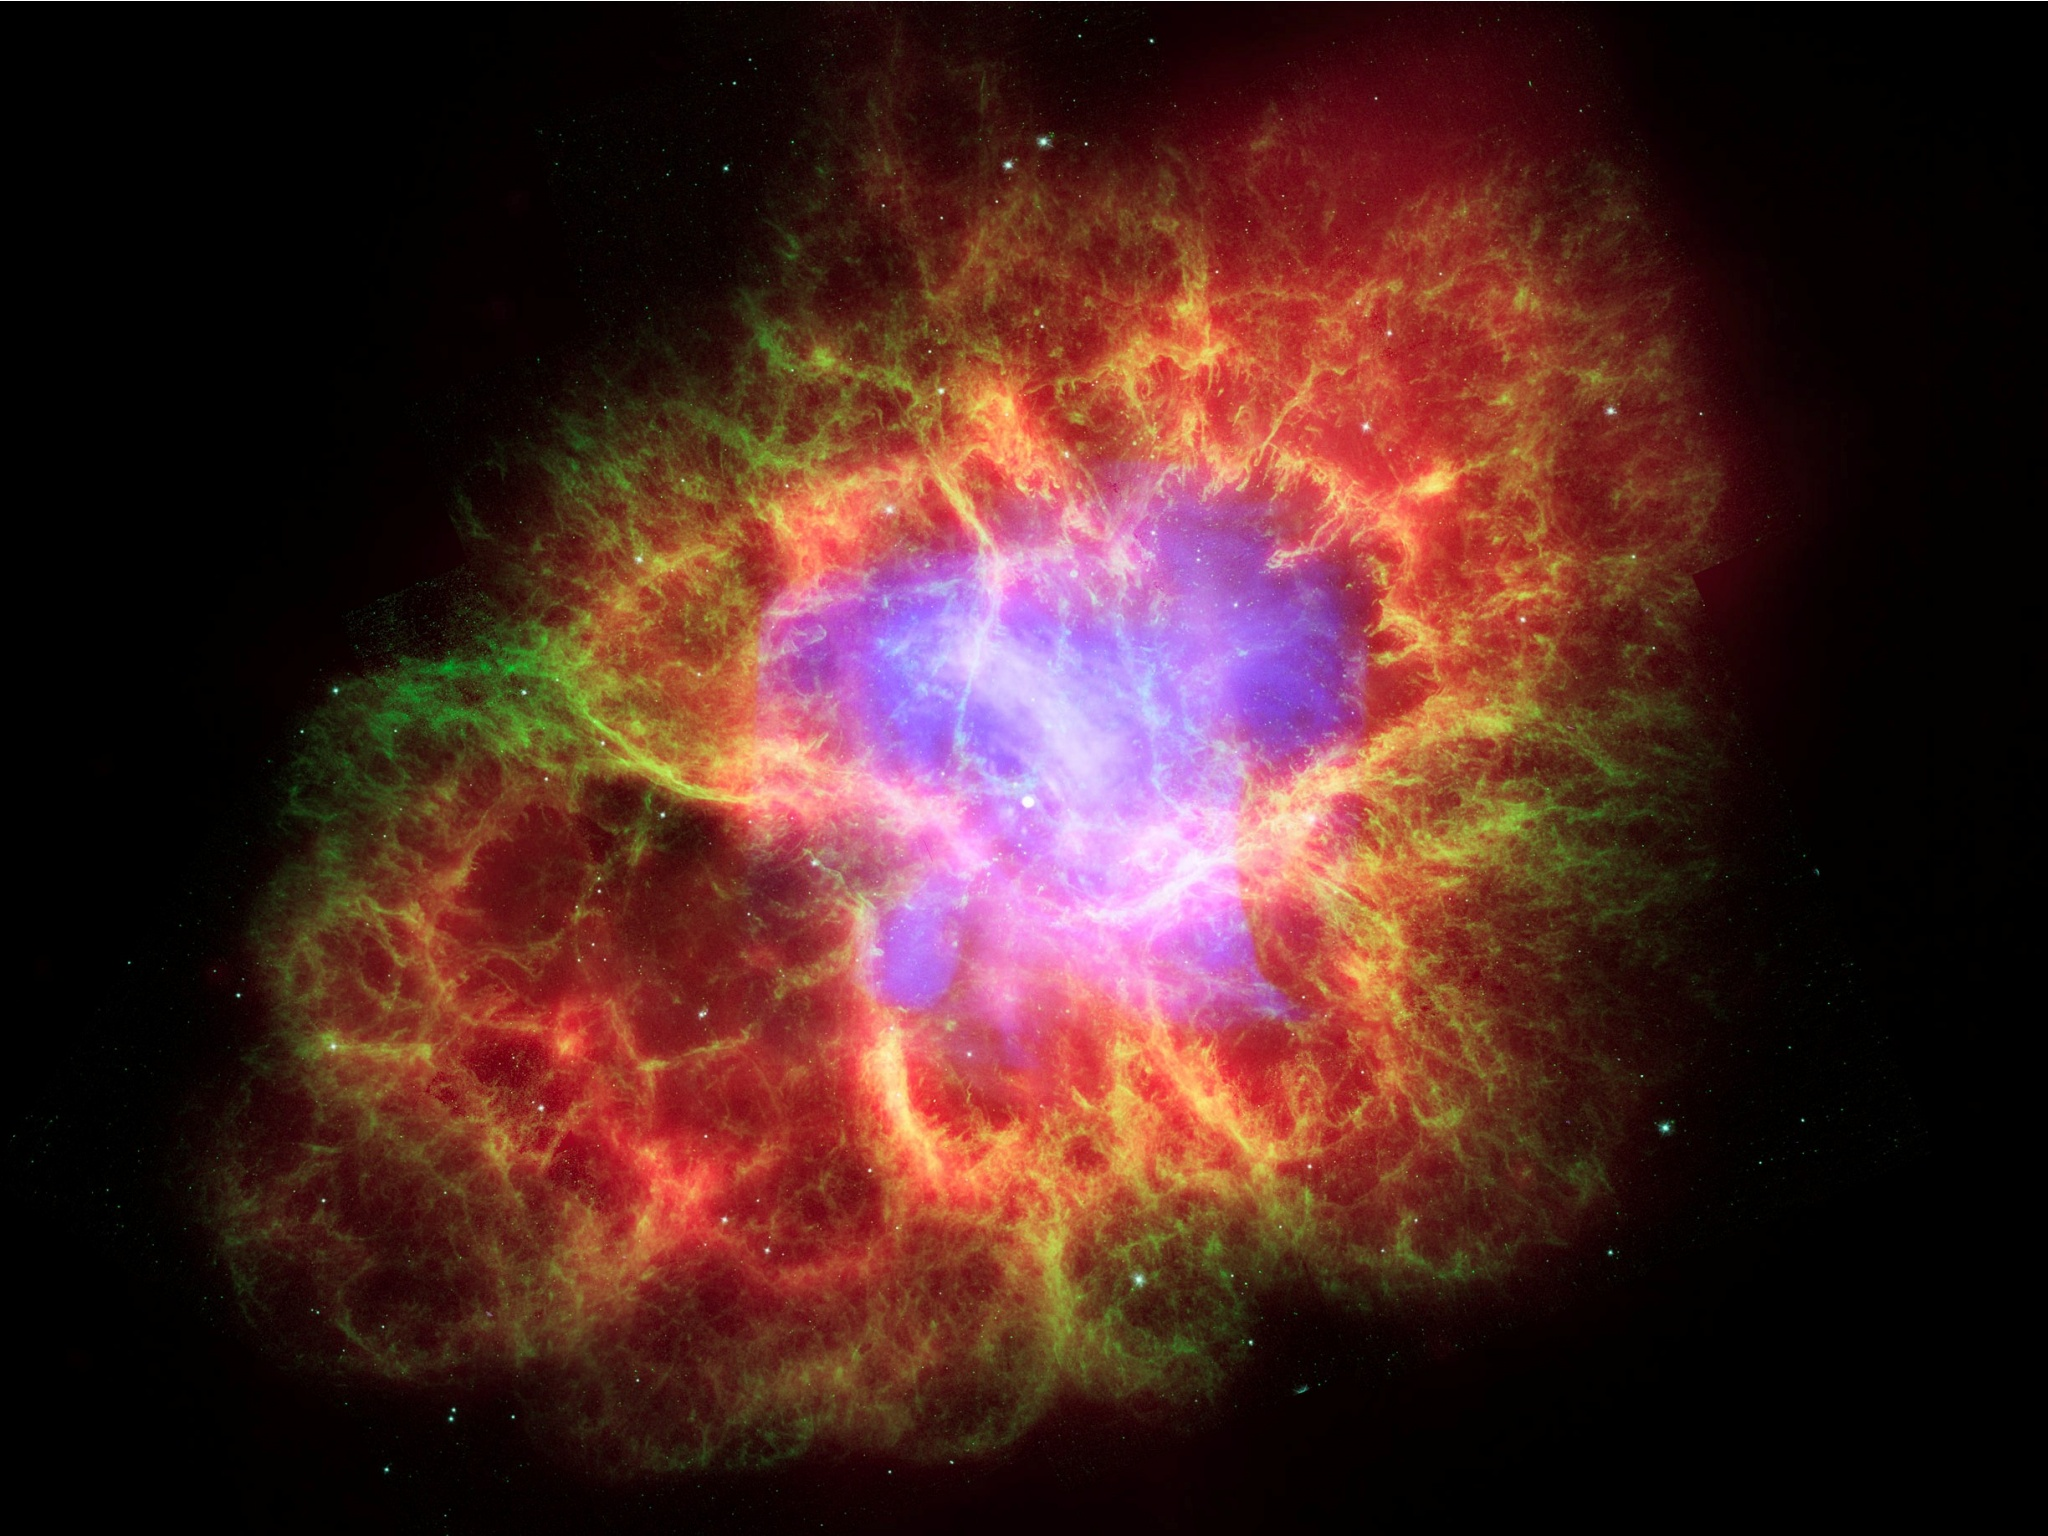 2048x1536 space nebula - photo #21